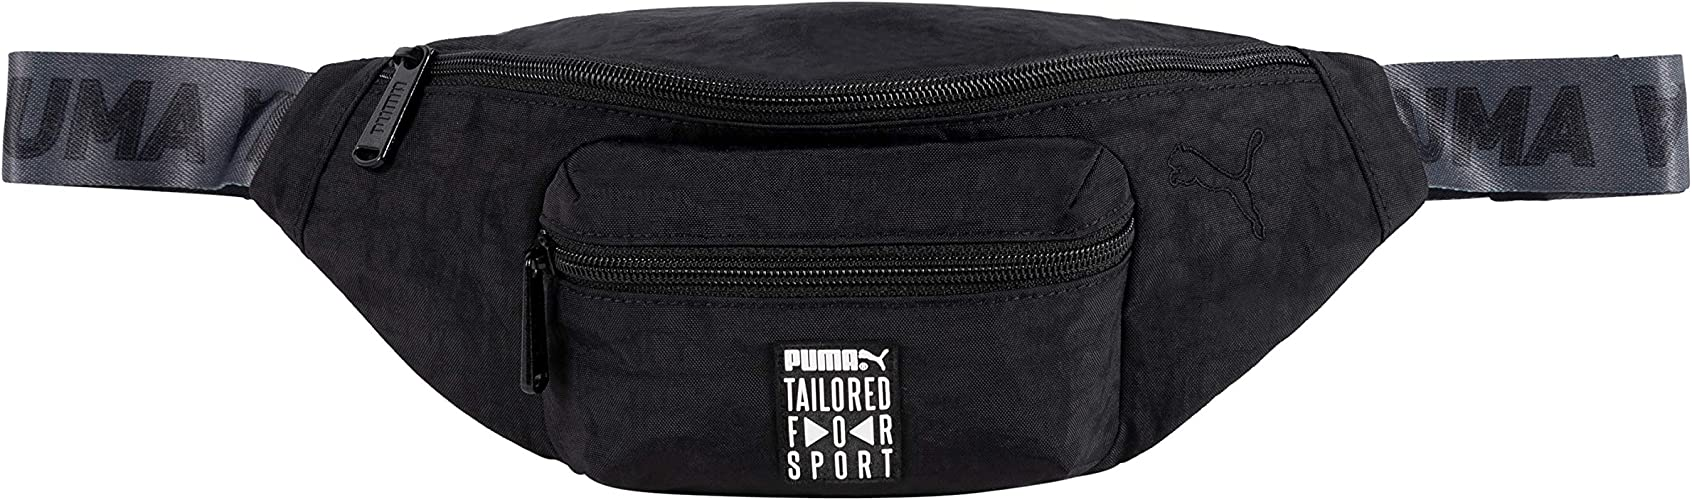 PUMA Tailored for Sport Waist and Shoulder Pack Bag (Black): Amazon.es: Zapatos y complementos